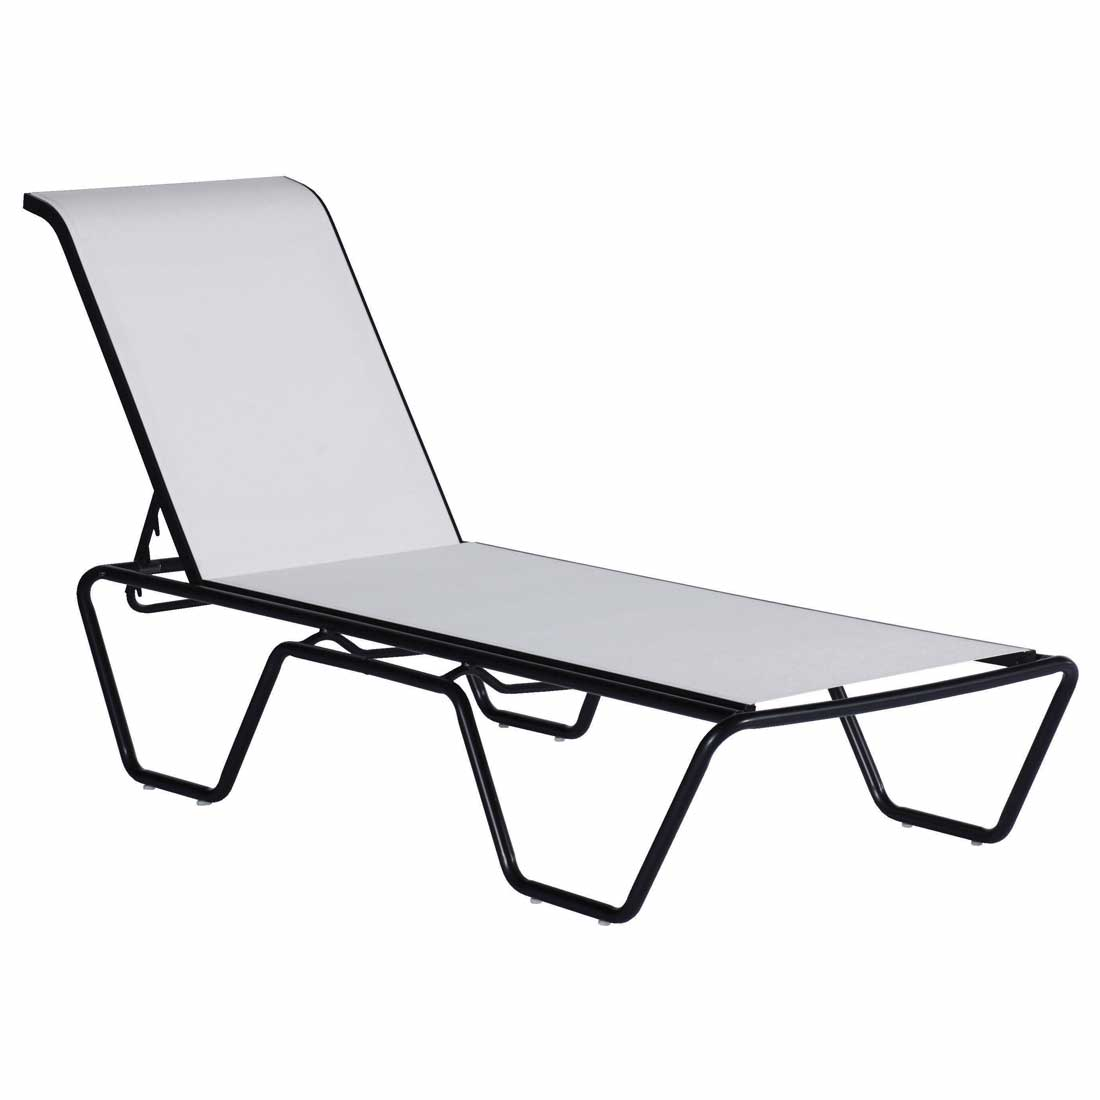 100 stackable chaise lounge chair lounge furniture for Chaise rocking chair ikea